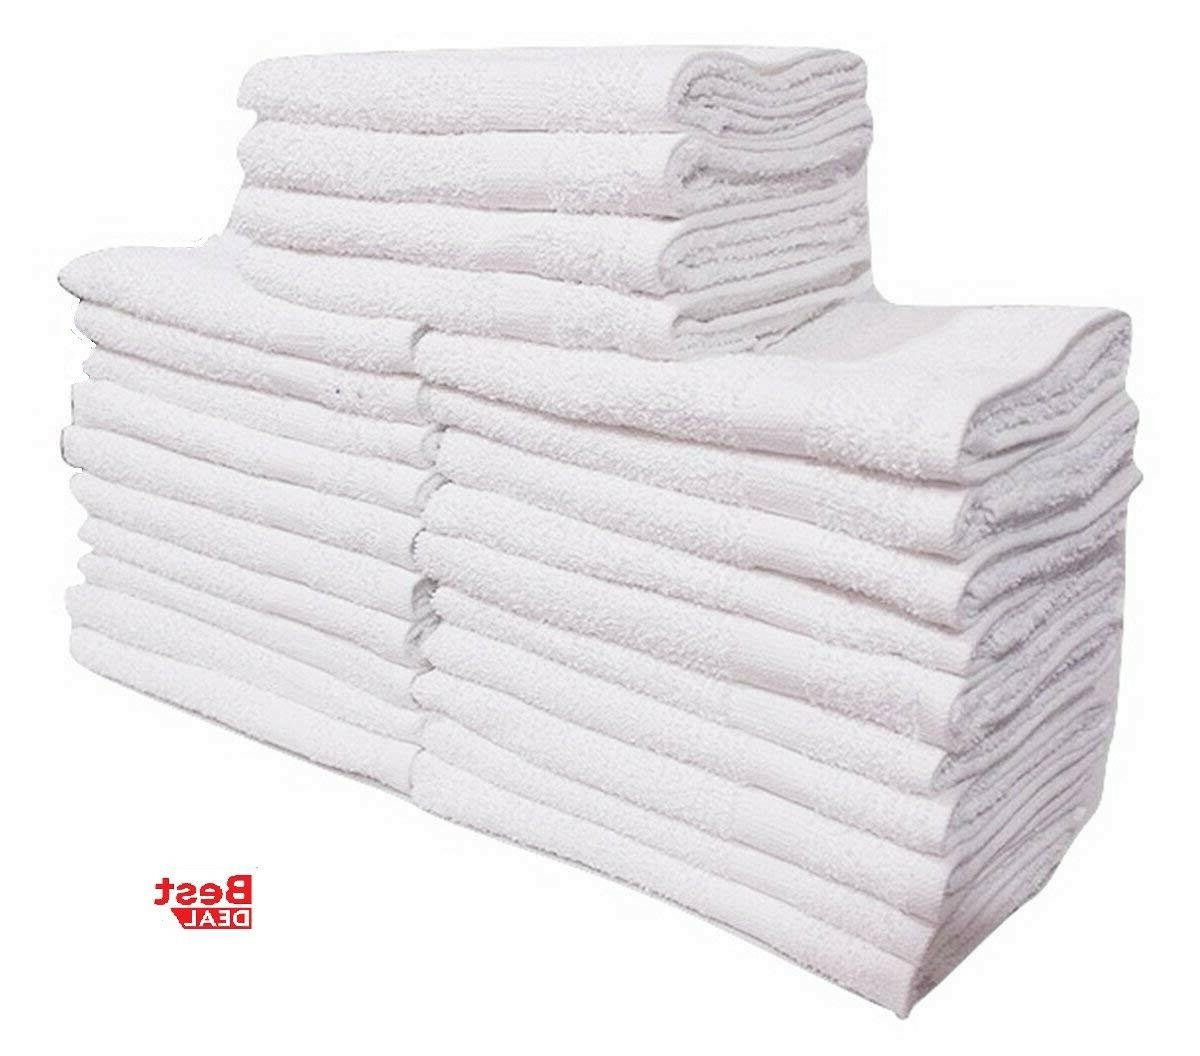 12 new cotton hand towels 16x27 100% DEAL spa